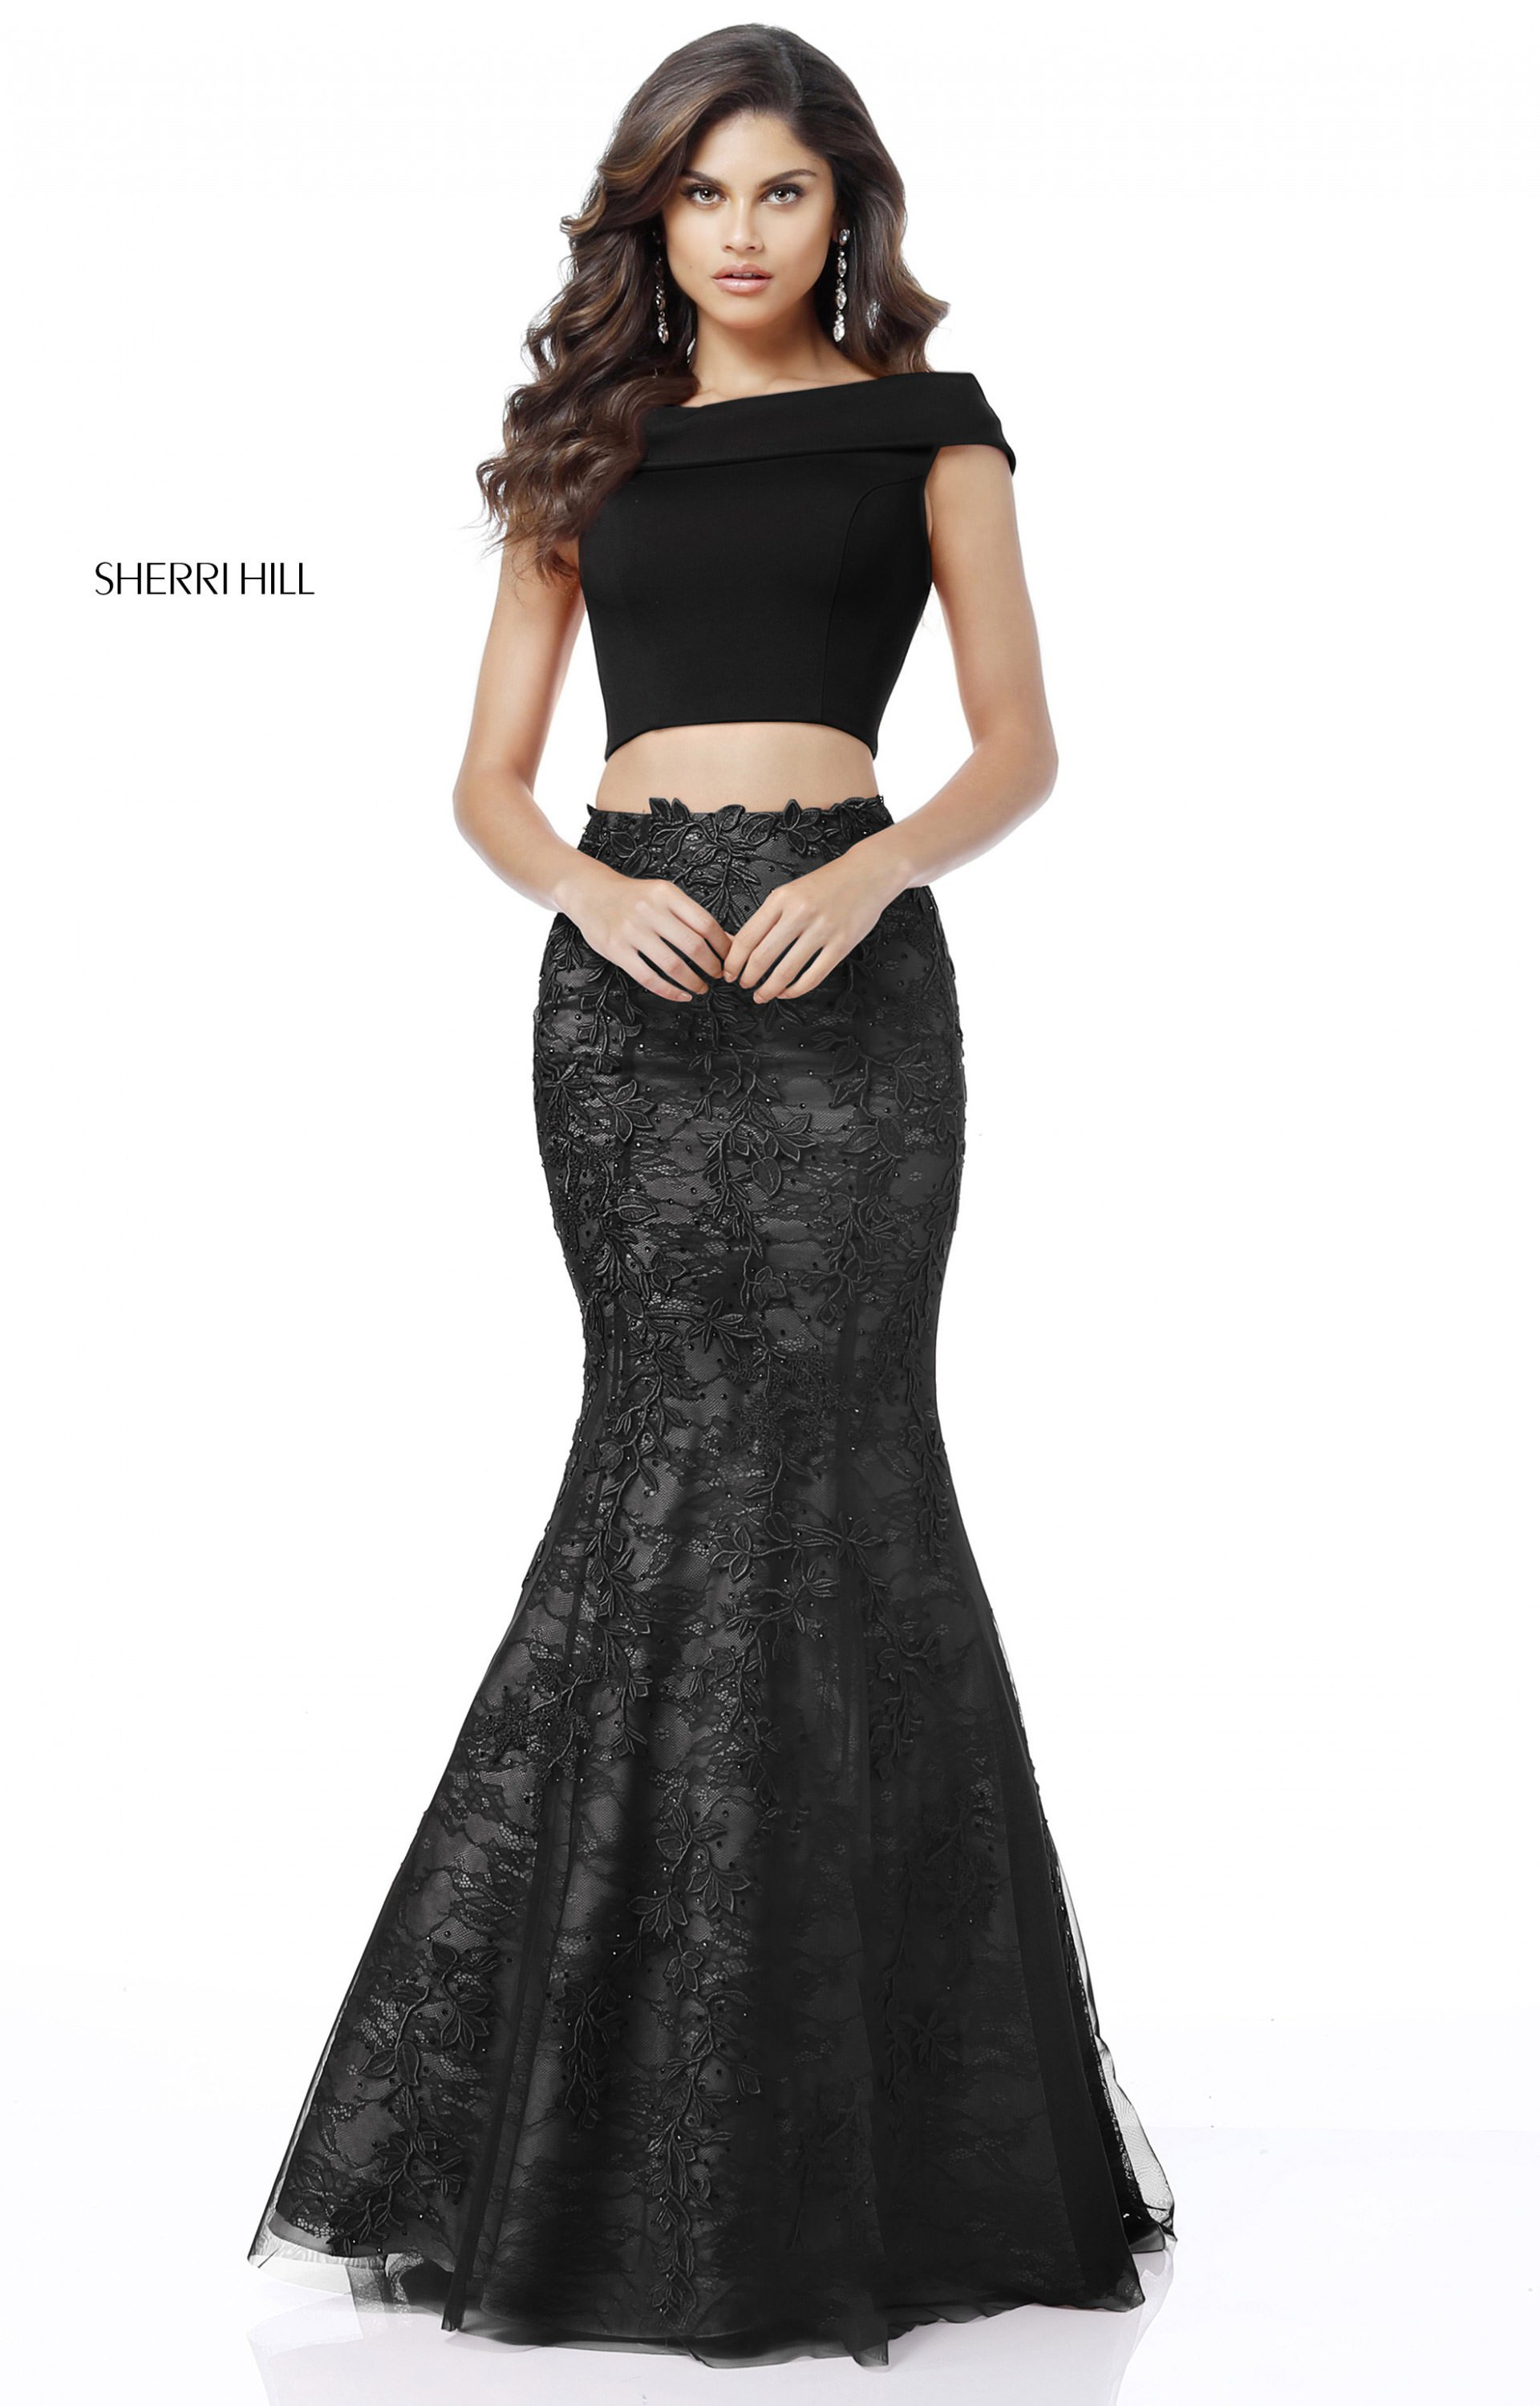 Sherri Hill 51730 - Two Piece Off the Shoulder Lace Prom Dress 3674fabf5